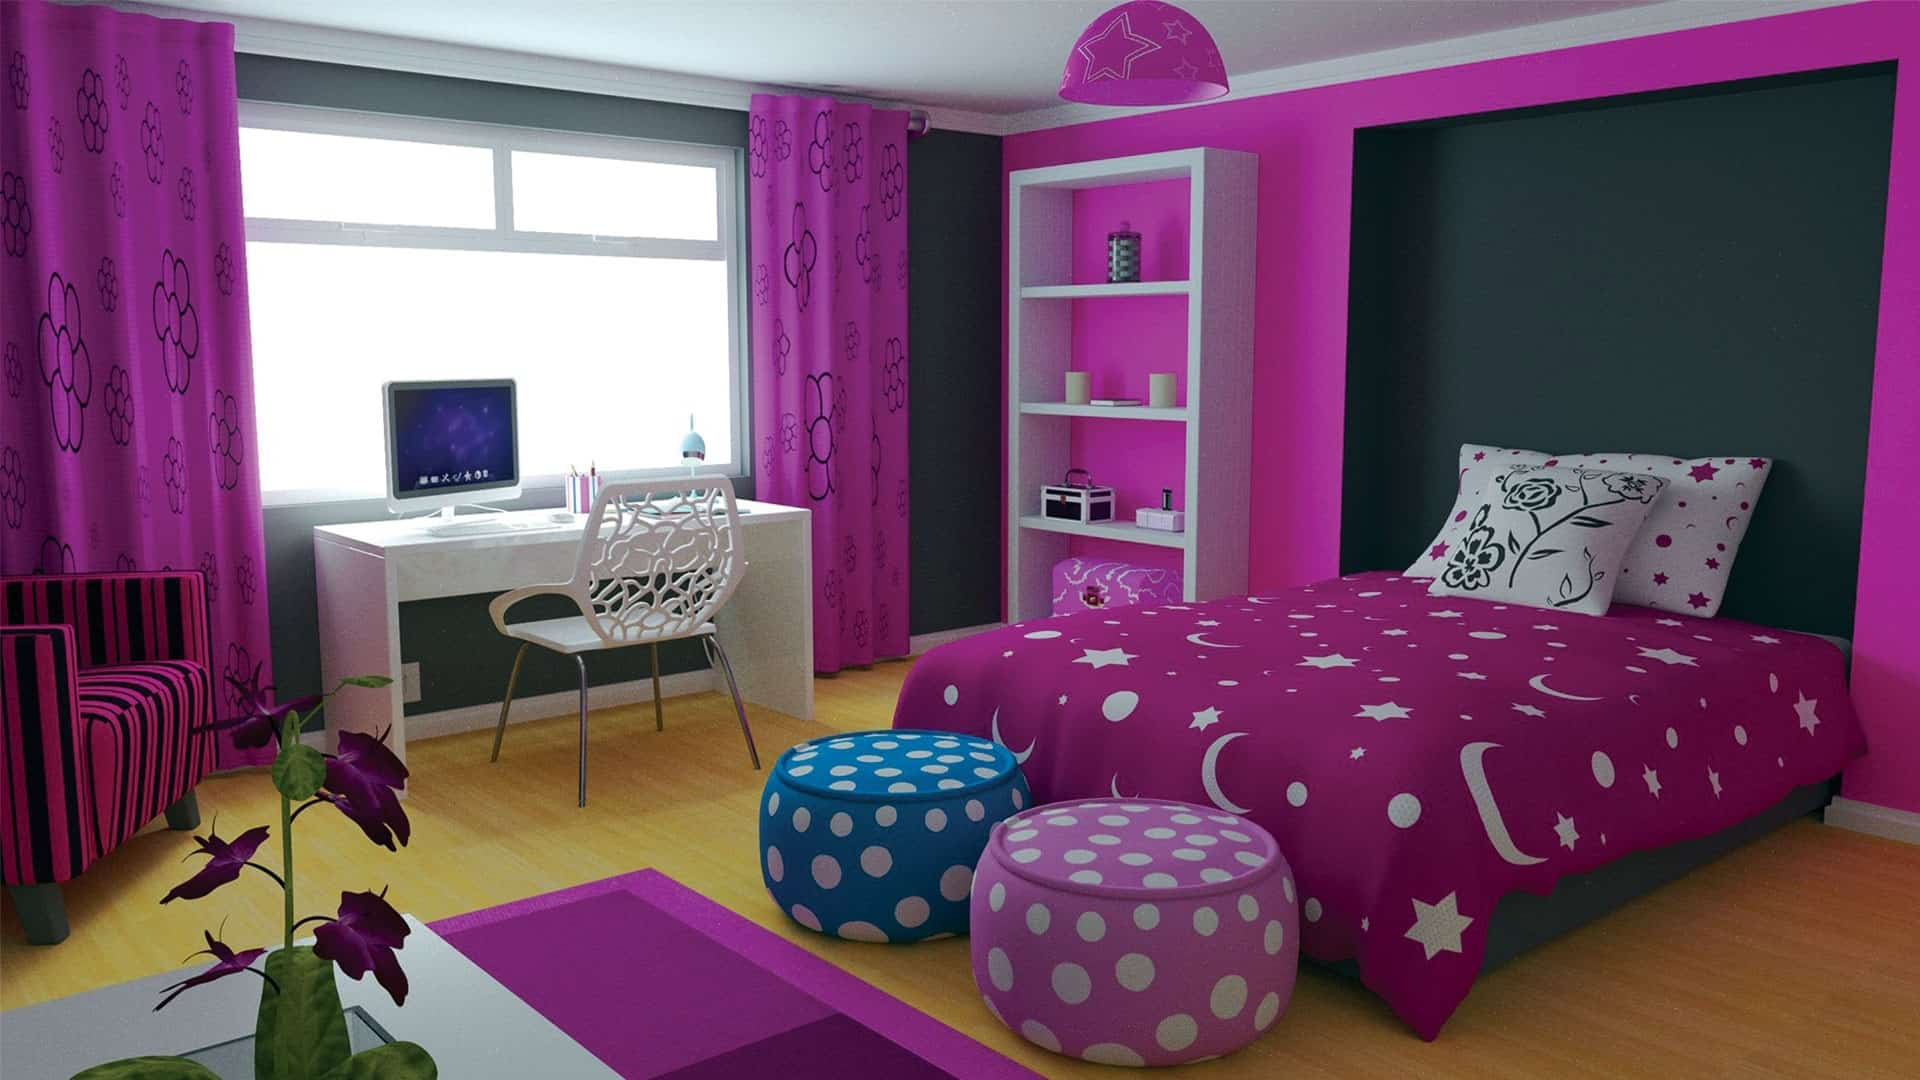 Home decor trends 2017 purple teen room for Room designs bedroom